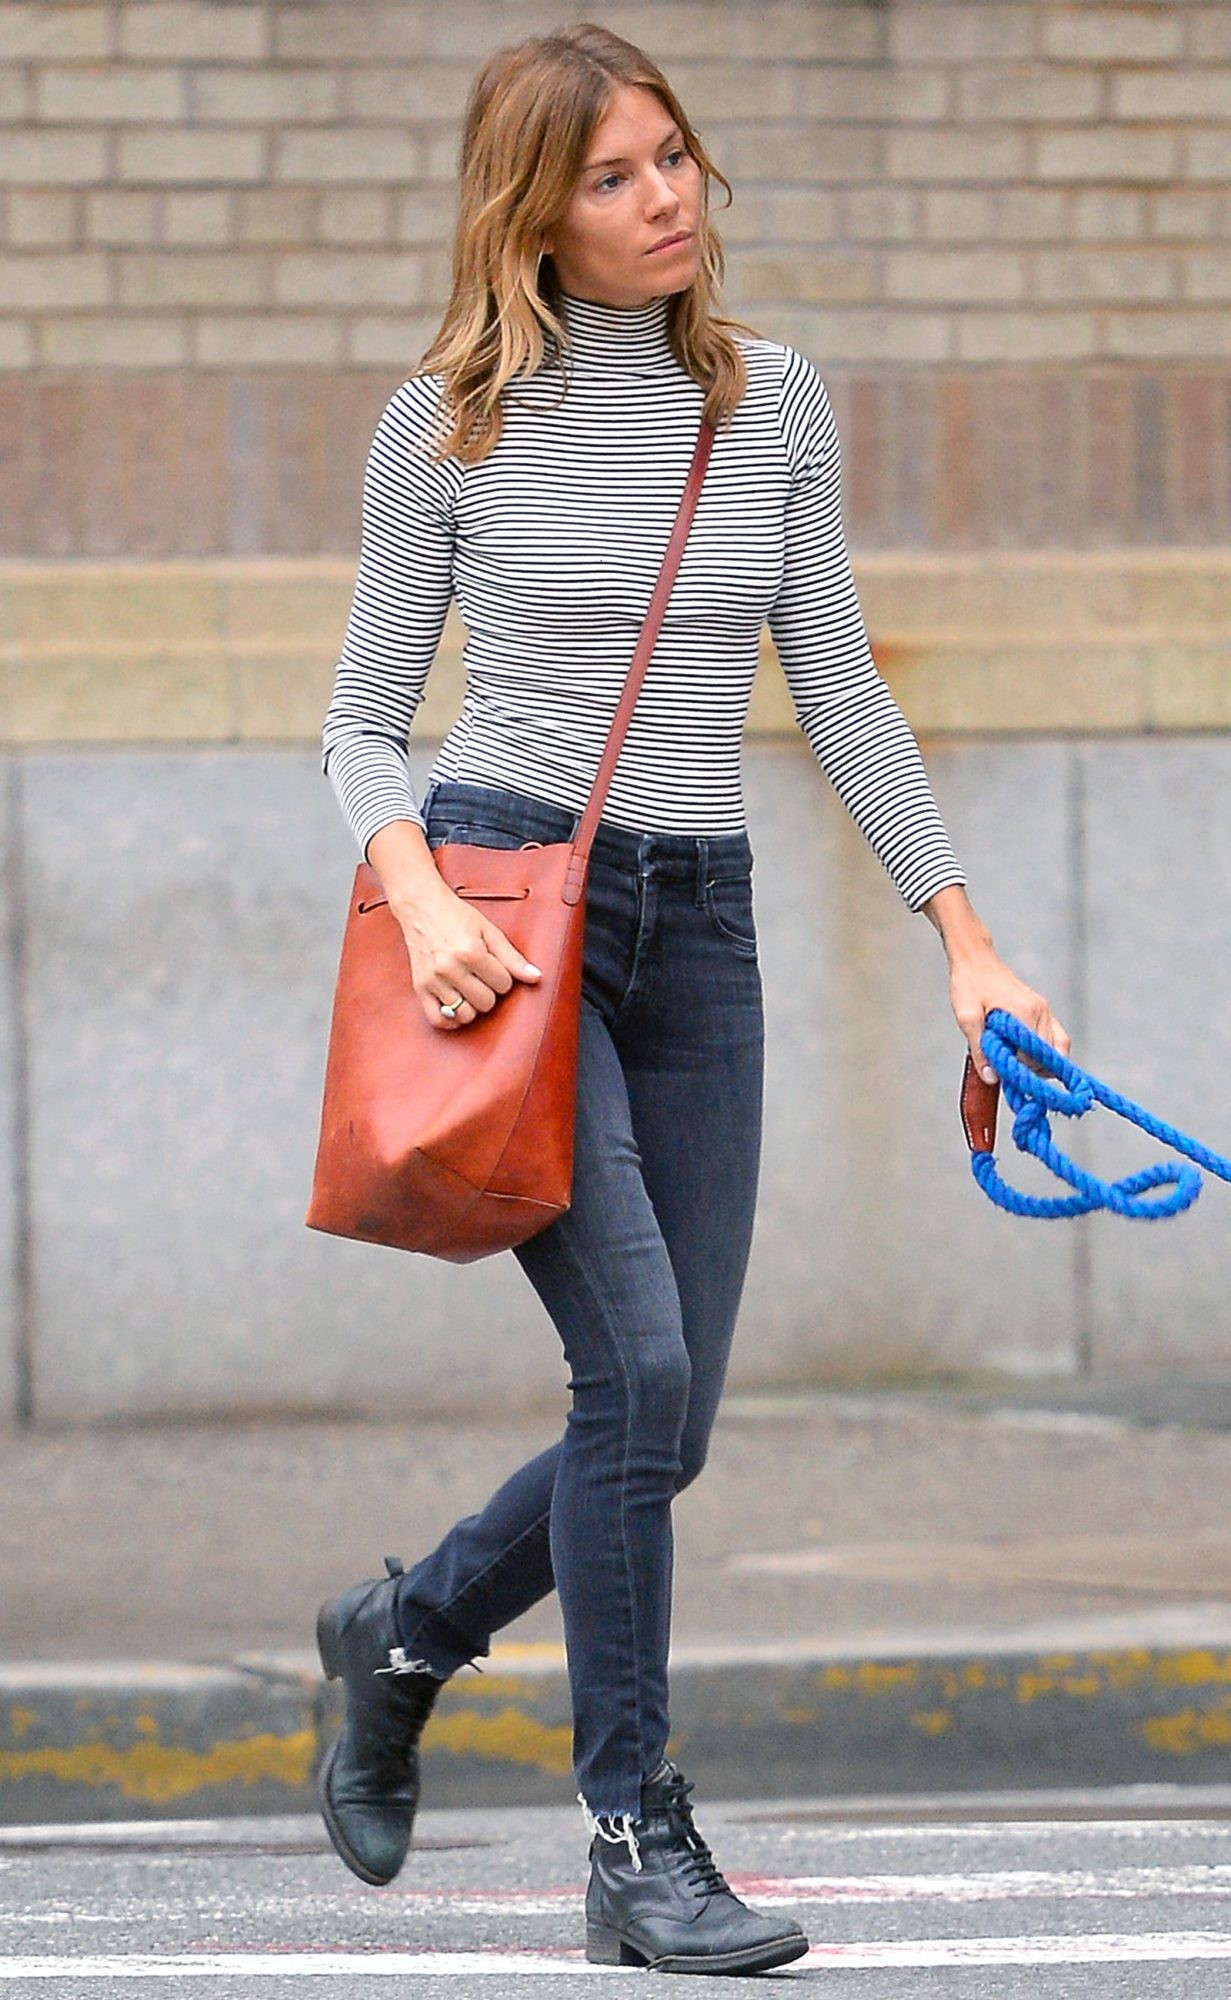 EXCLUSIVE: Sienna Miller Walks Her Dog Wearing A Striped Top Black Skinny Pants And Black Boots In The West Village In New York City